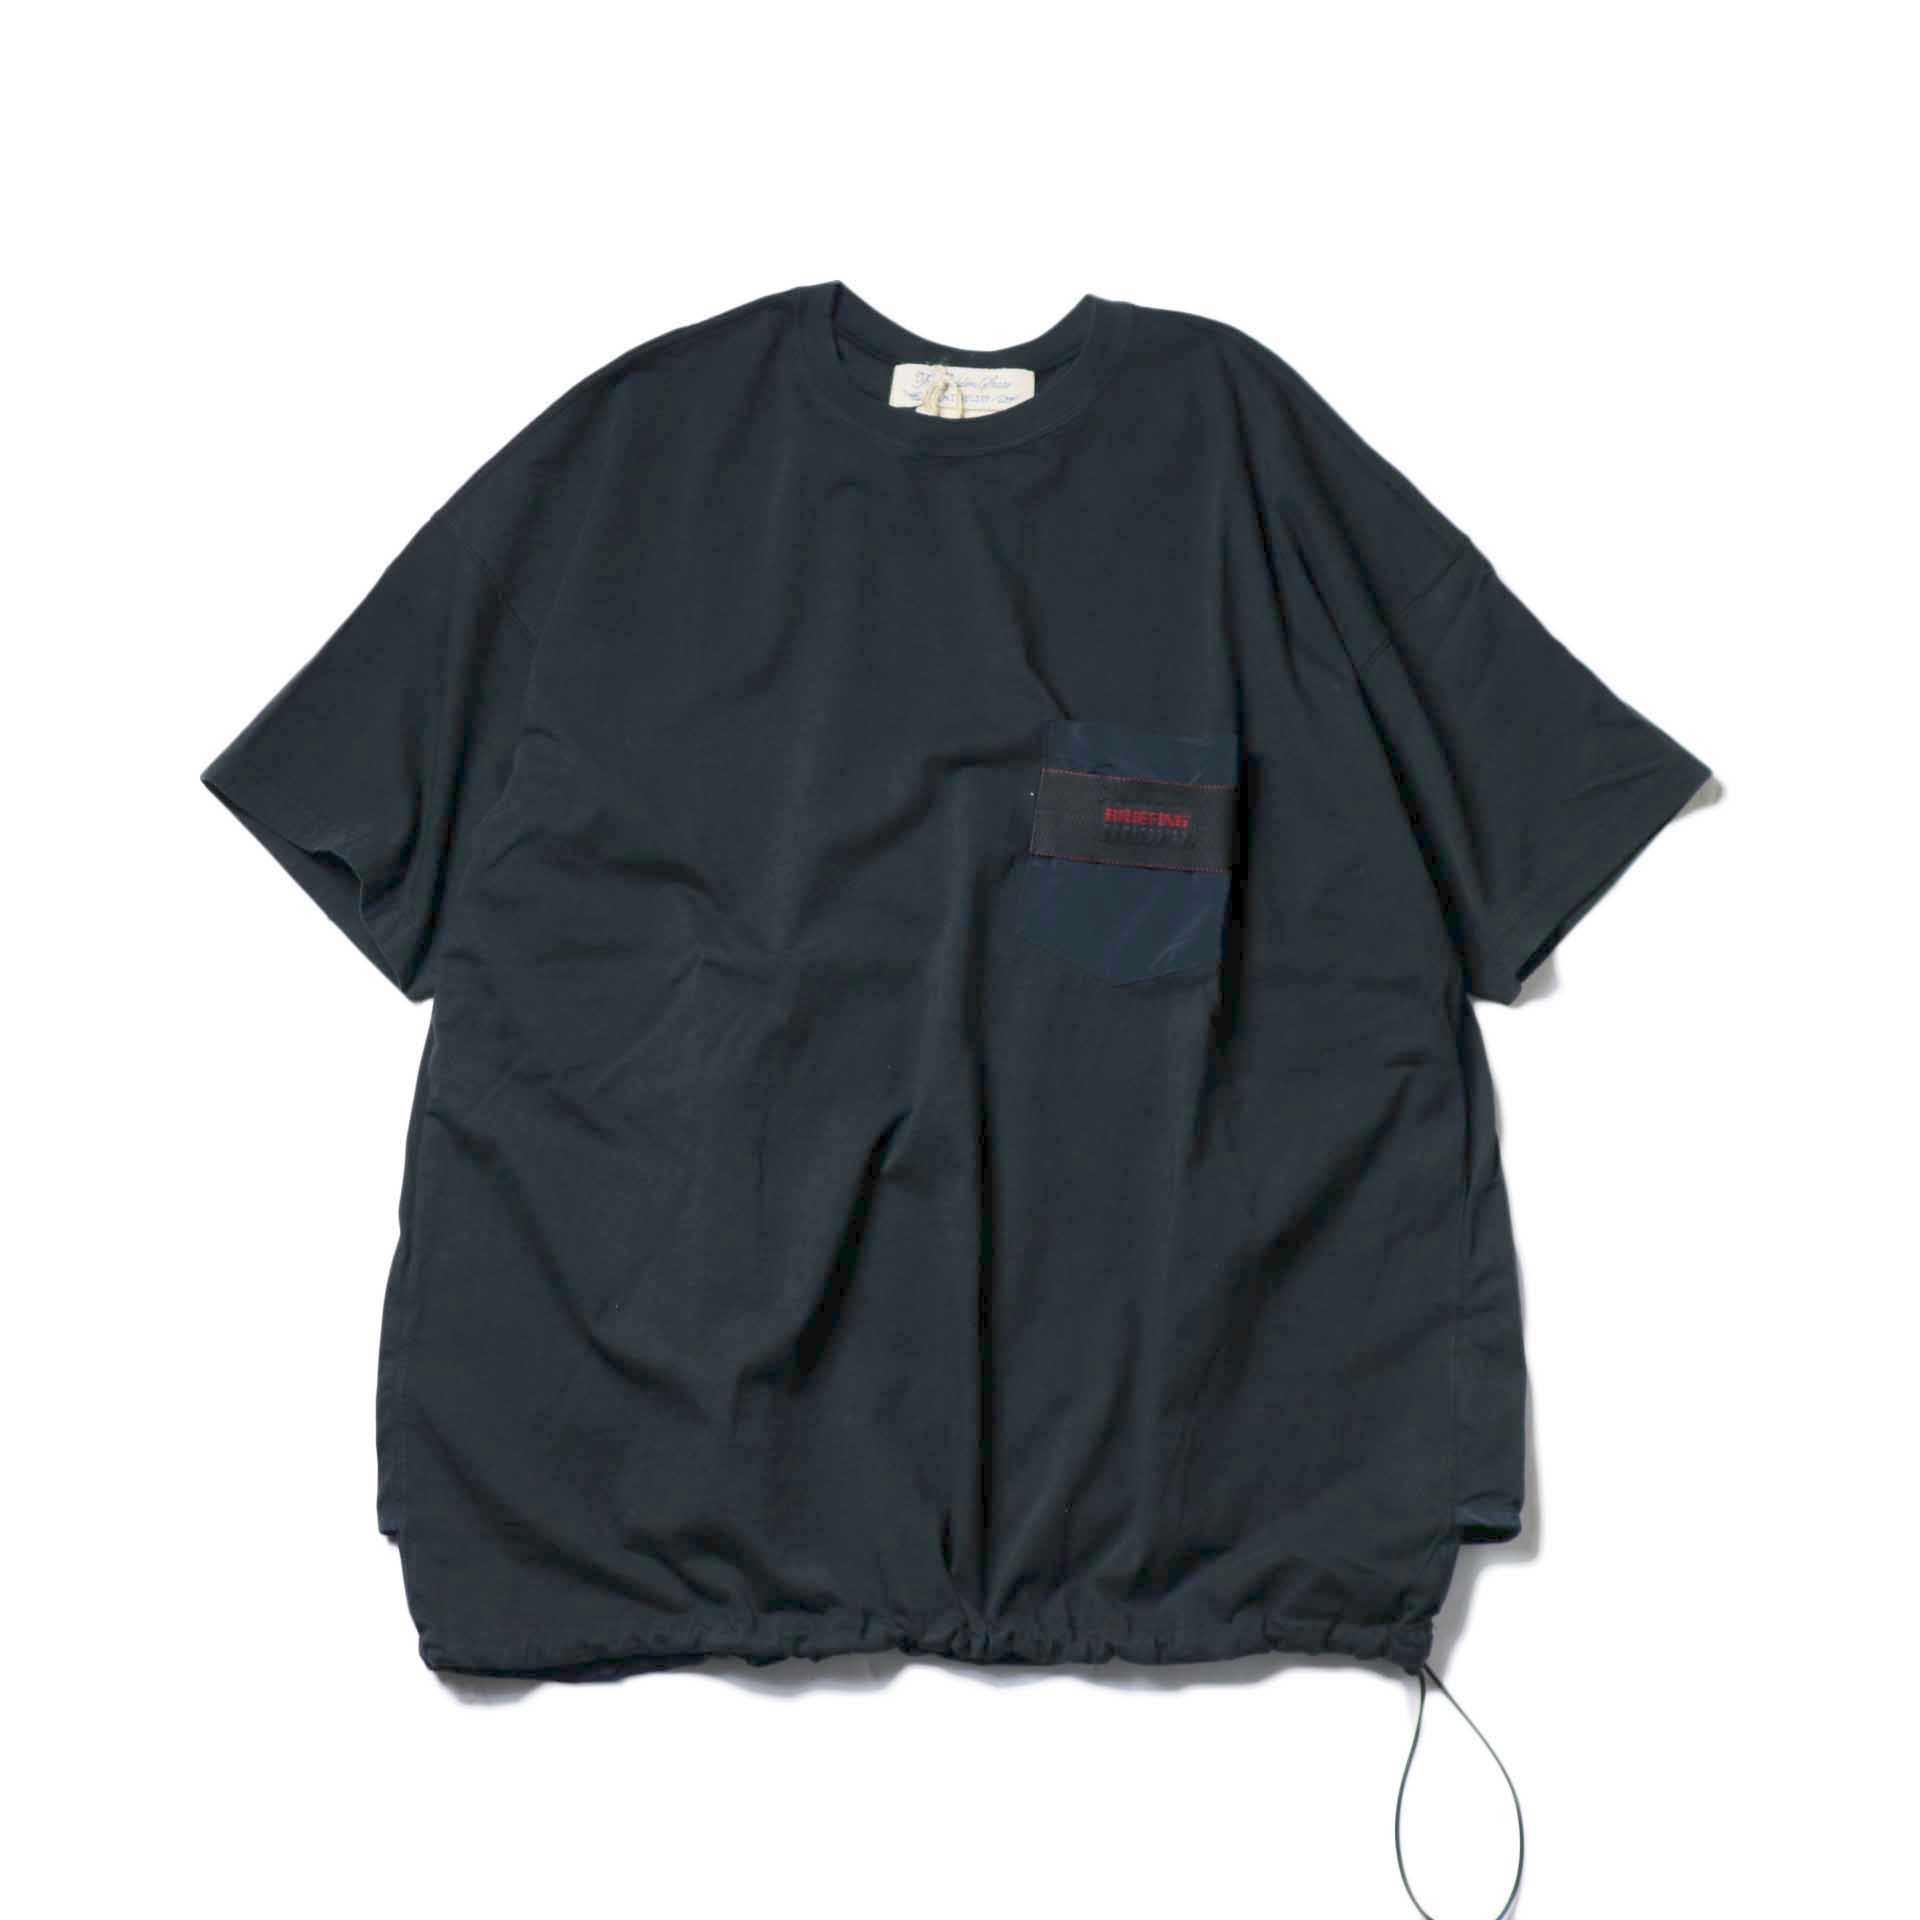 REMI RELIEF × BRIEFING / 天竺ベンチレーションTee (Black)